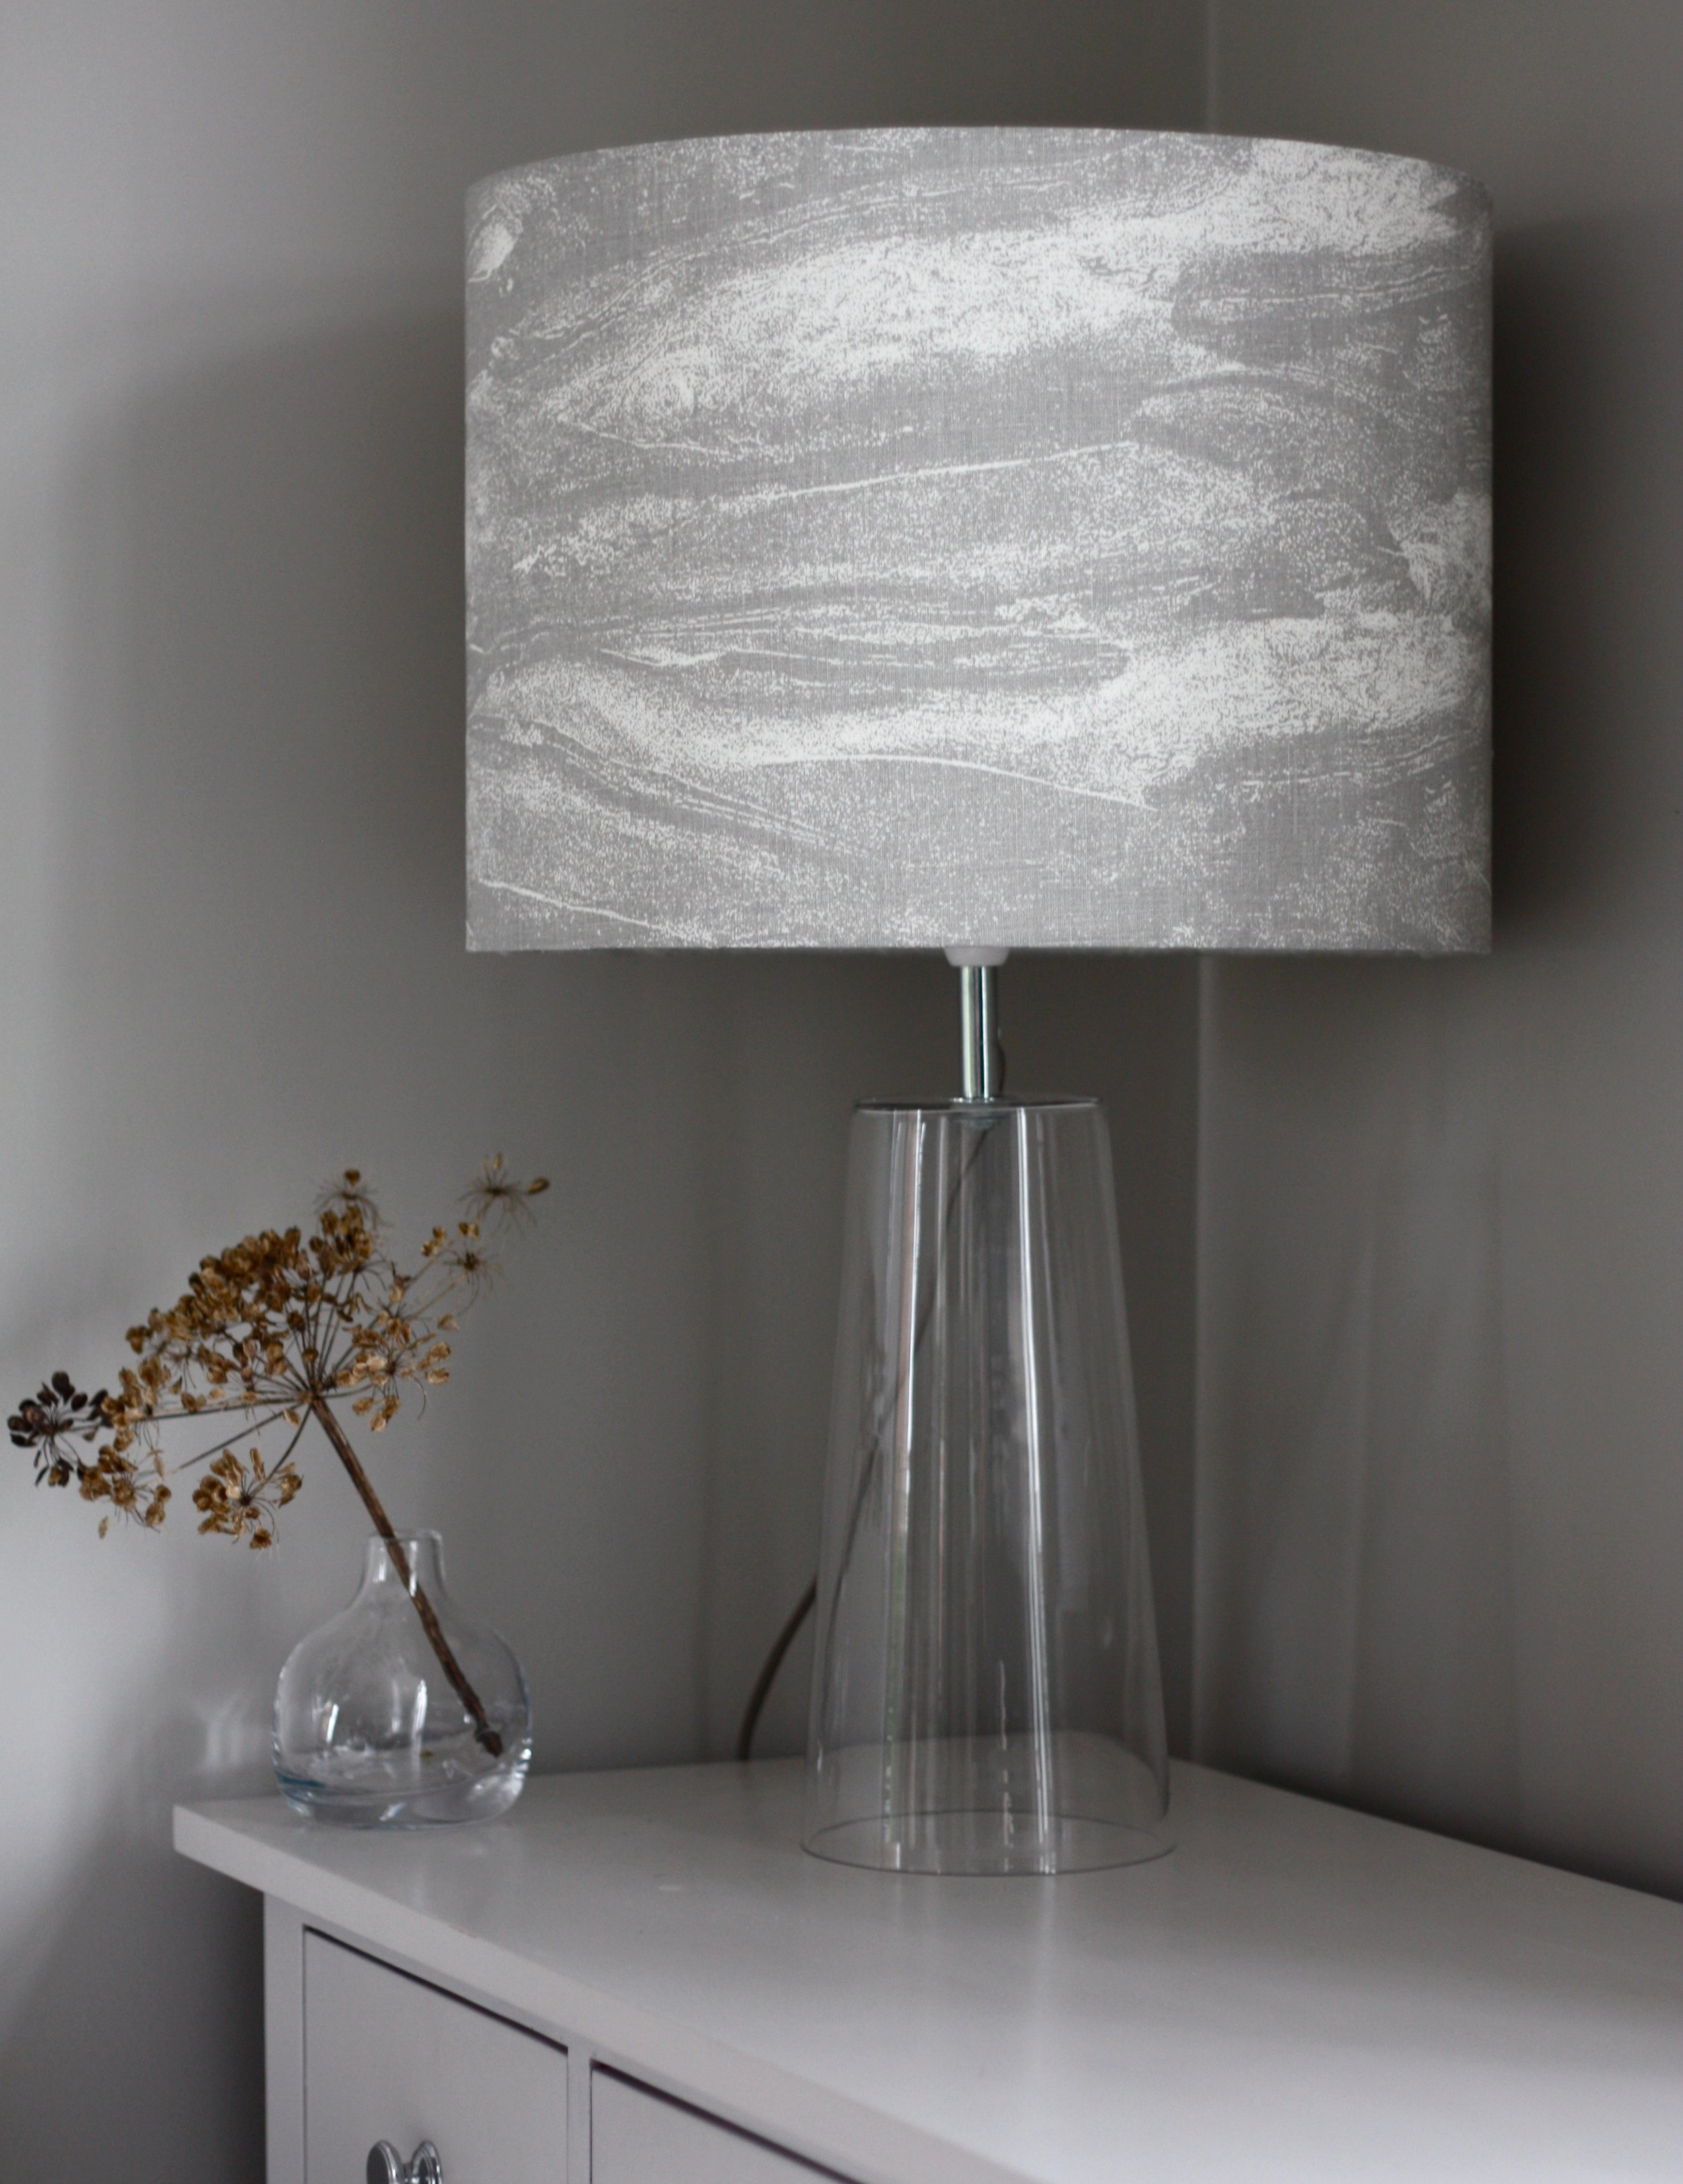 Devon Rockpool Lampshade in Rock Grey